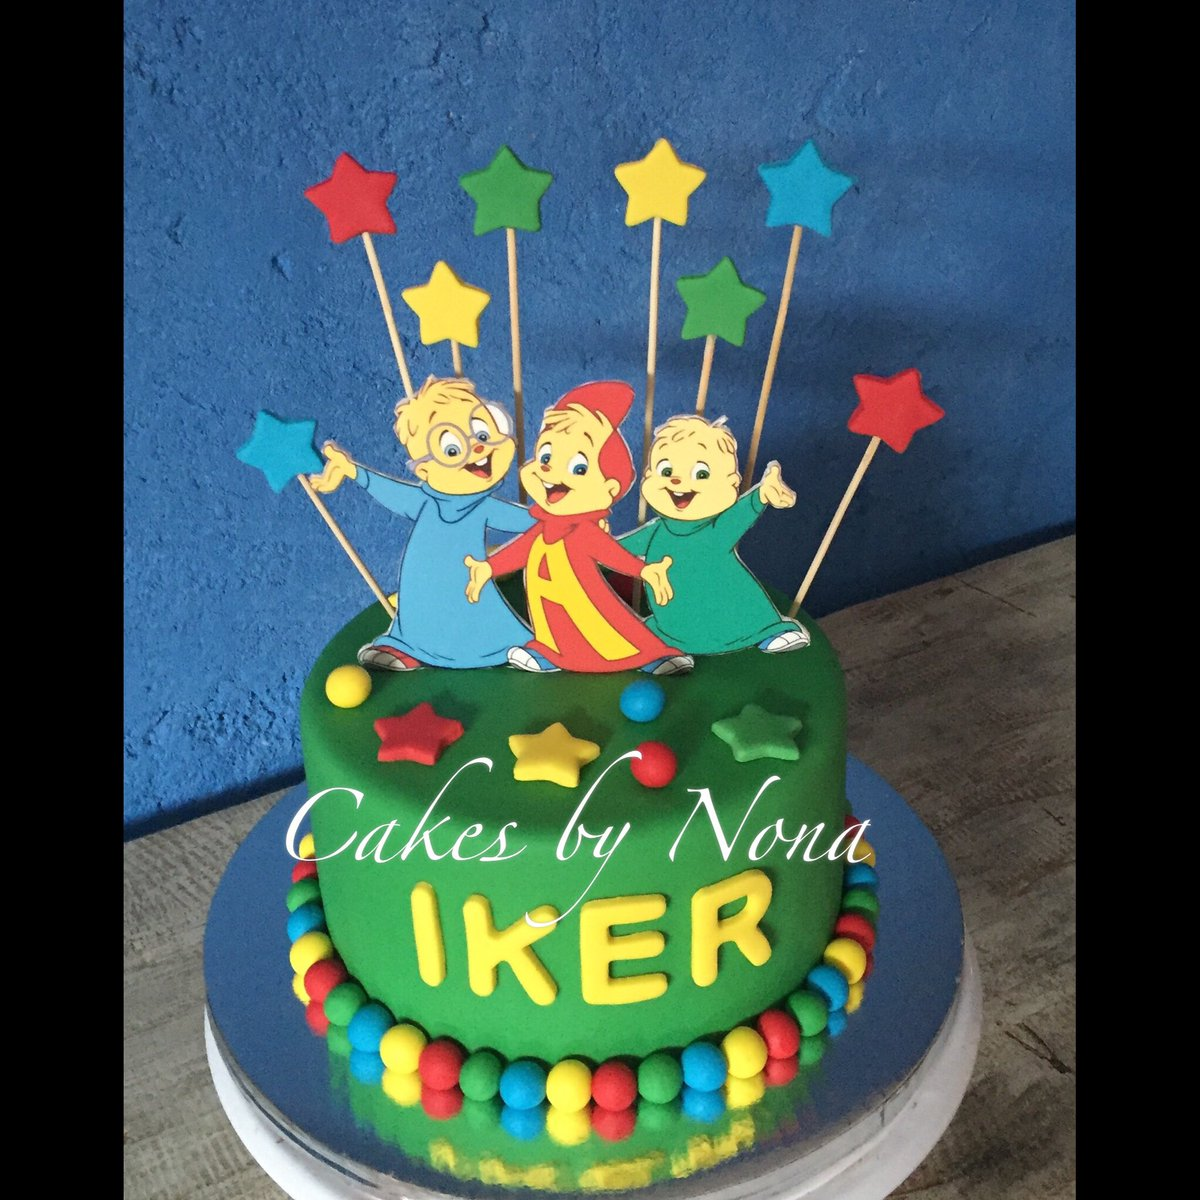 Miraculous Cakesbynona On Twitter Alvin And The Chipmunks Bday Cake Alvin Funny Birthday Cards Online Alyptdamsfinfo